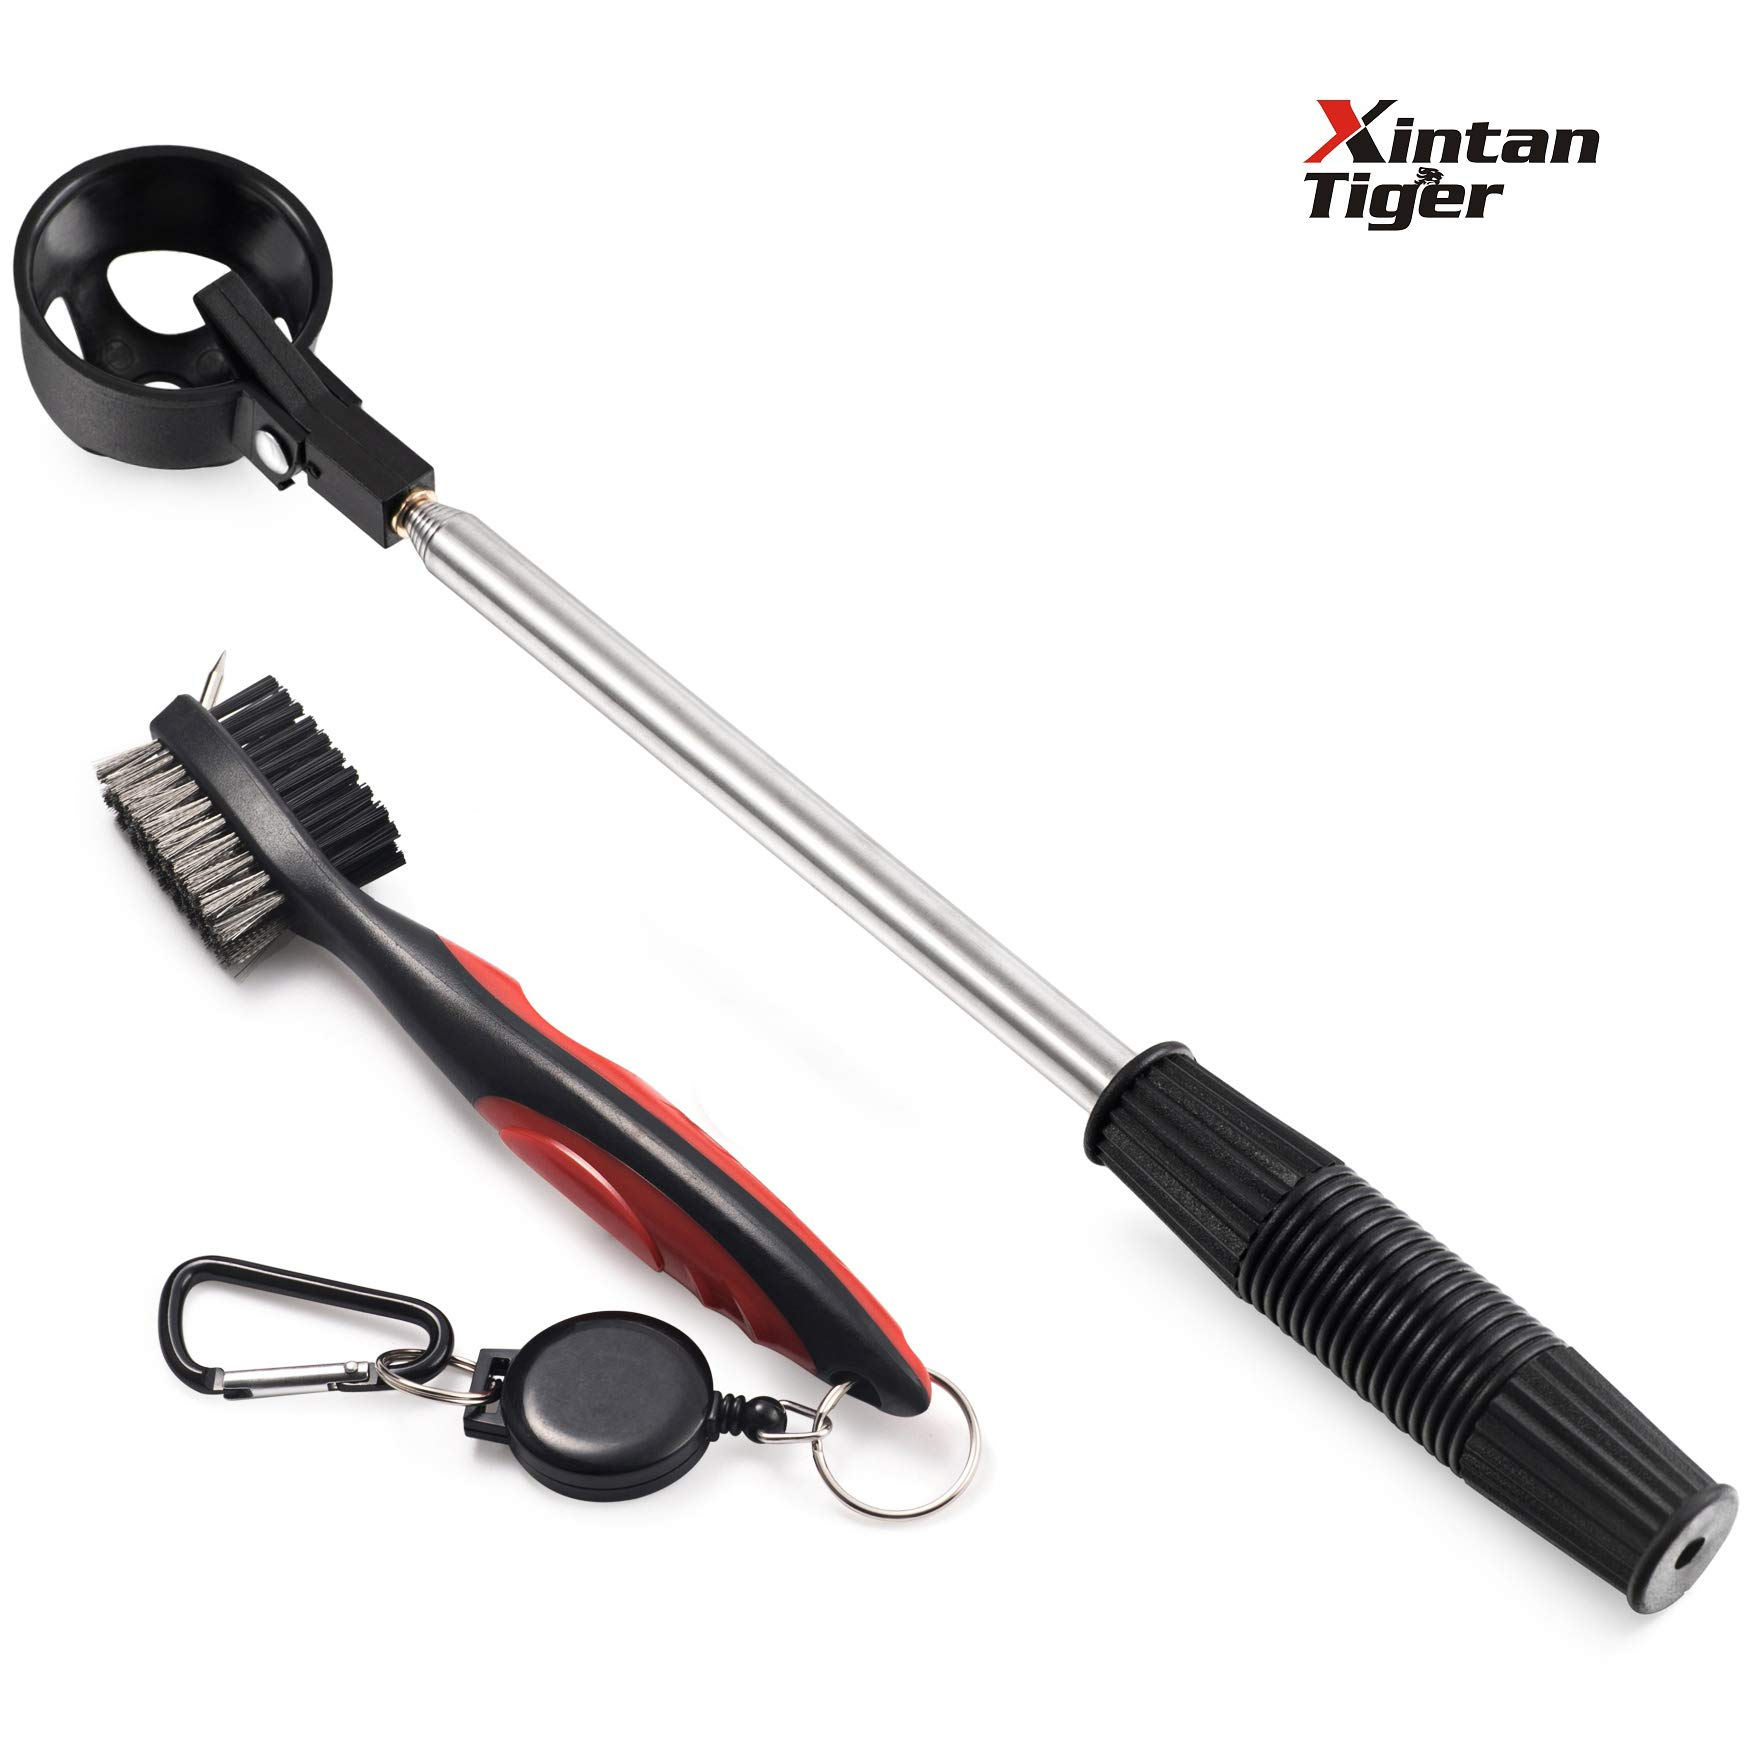 Xintan Tiger Golf Ball Retriever & Golf Club Cleaning Brush with Groove Cleaner Retractable Zip-line Carabiner